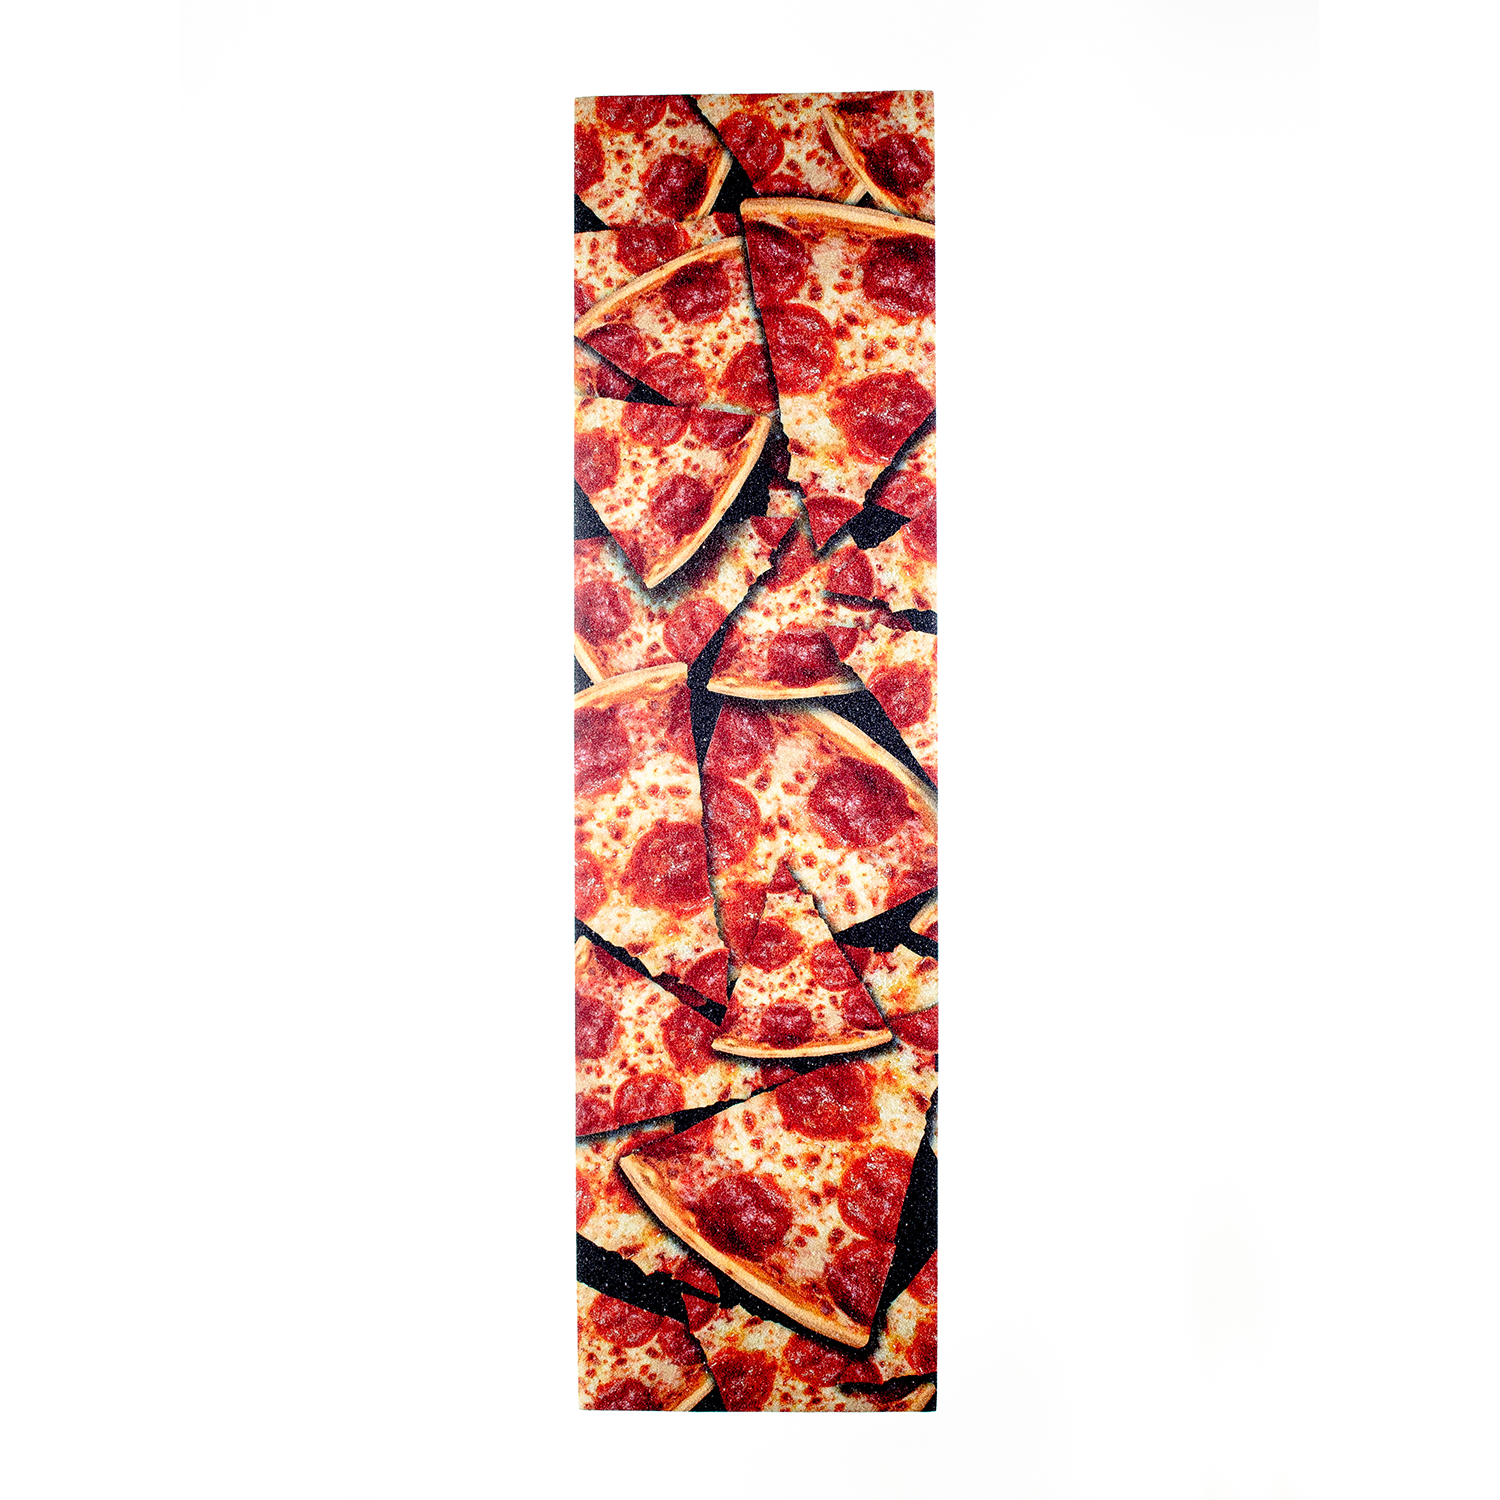 Lija - Cold Pizza - 9x33""